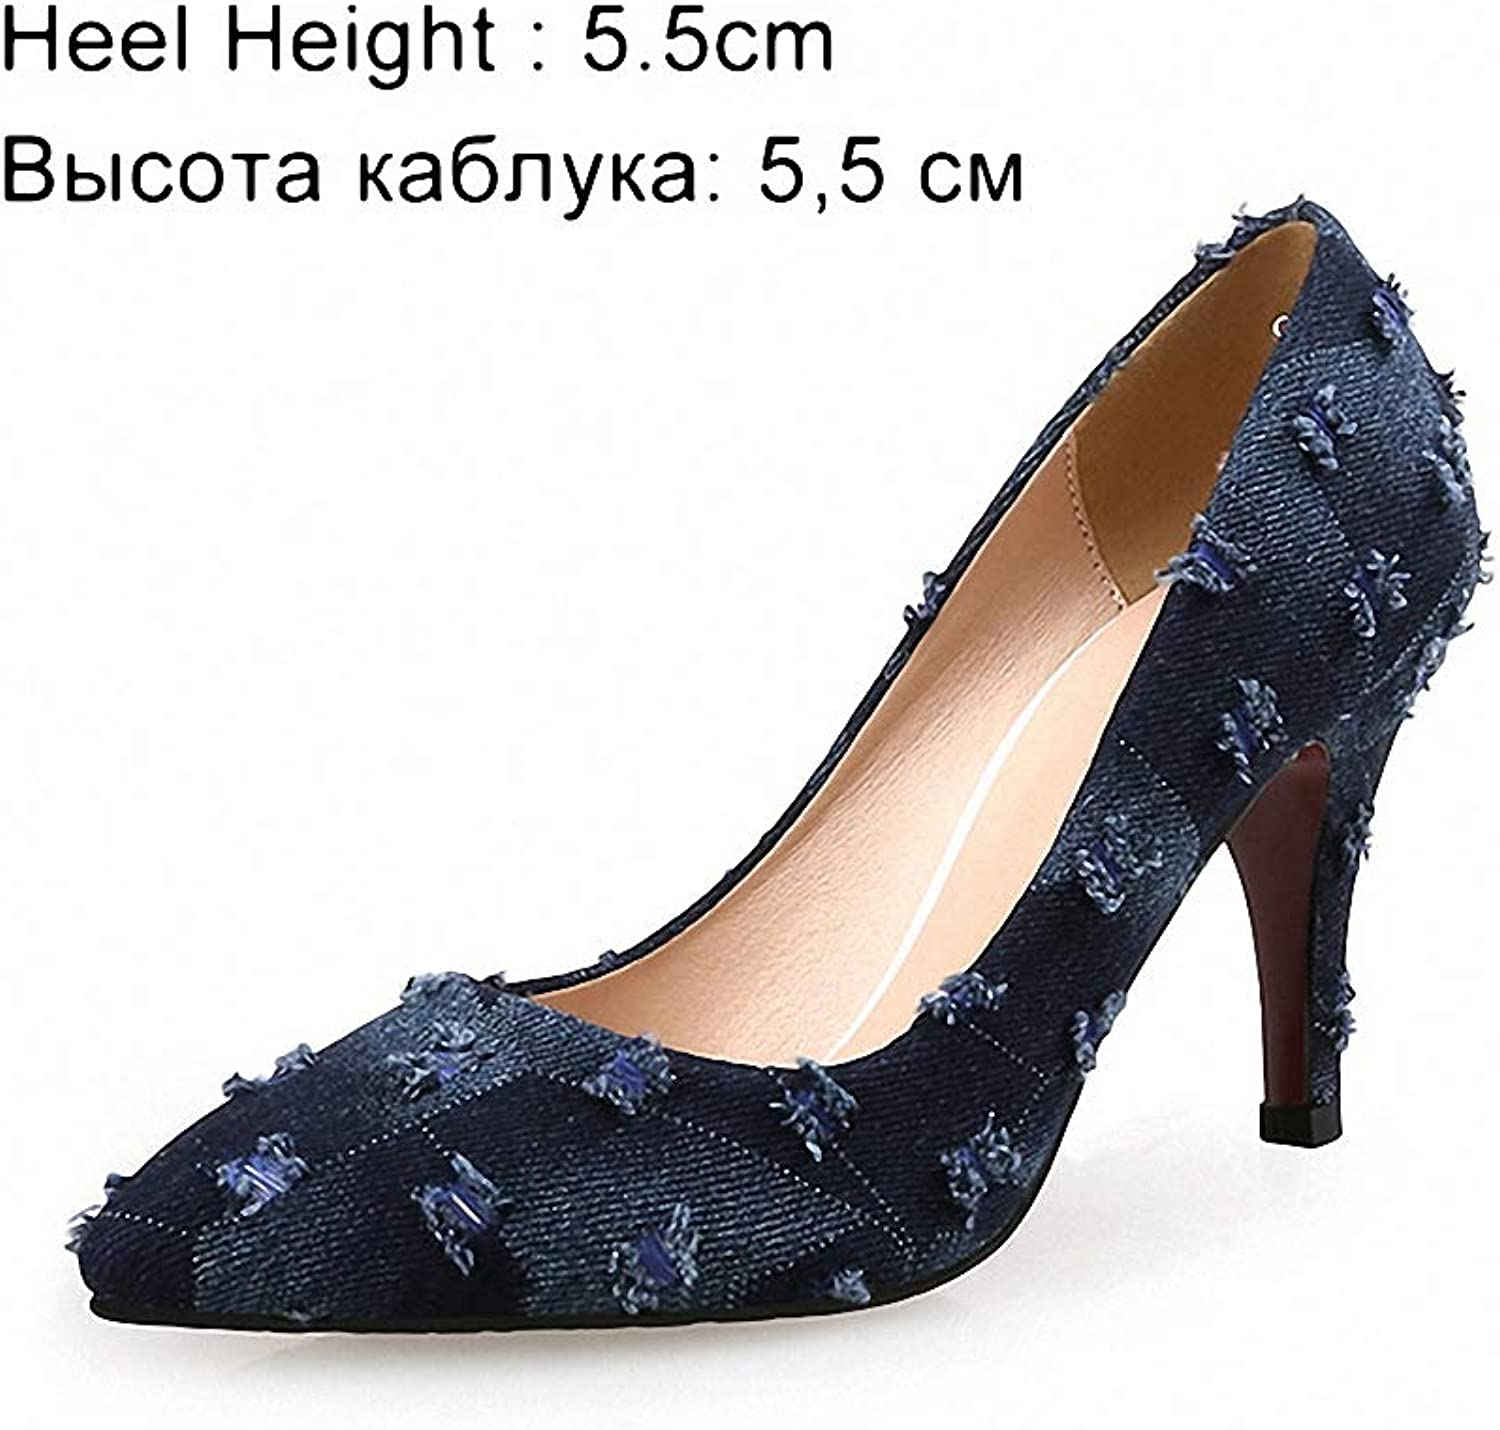 Womens High-Heeled Pumps shoes Women Pumps High Heels shoes Female Casual Thin Heel Denim Ladies shoes Fashion Slip On Pointed Toe Party shoes Heels Plus Size